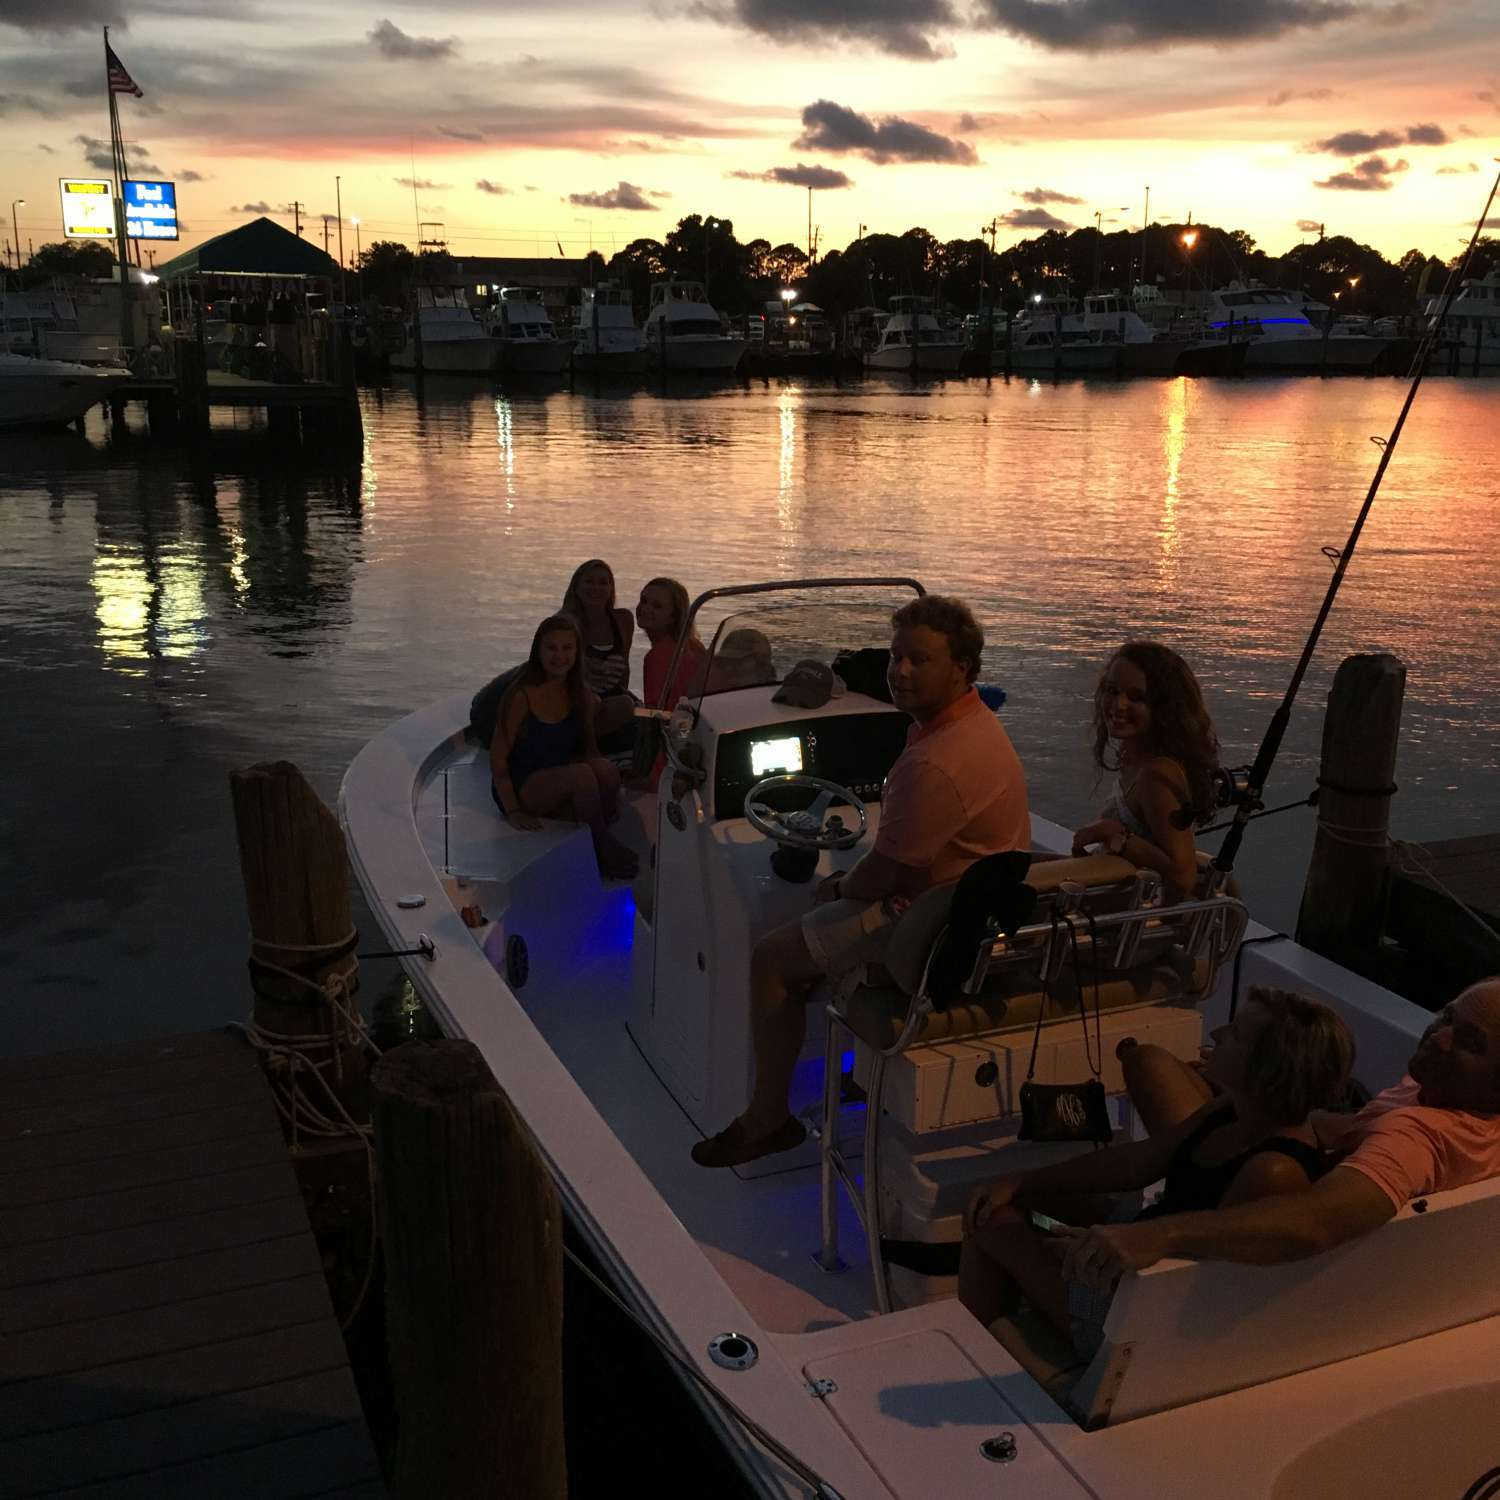 Title: Watching The Sunset At Treasure Island Marina - On board their Sportsman Masters 227 Bay Boat - Location: Hahira, Georgia. Participating in the Photo Contest #SportsmanAugust2016